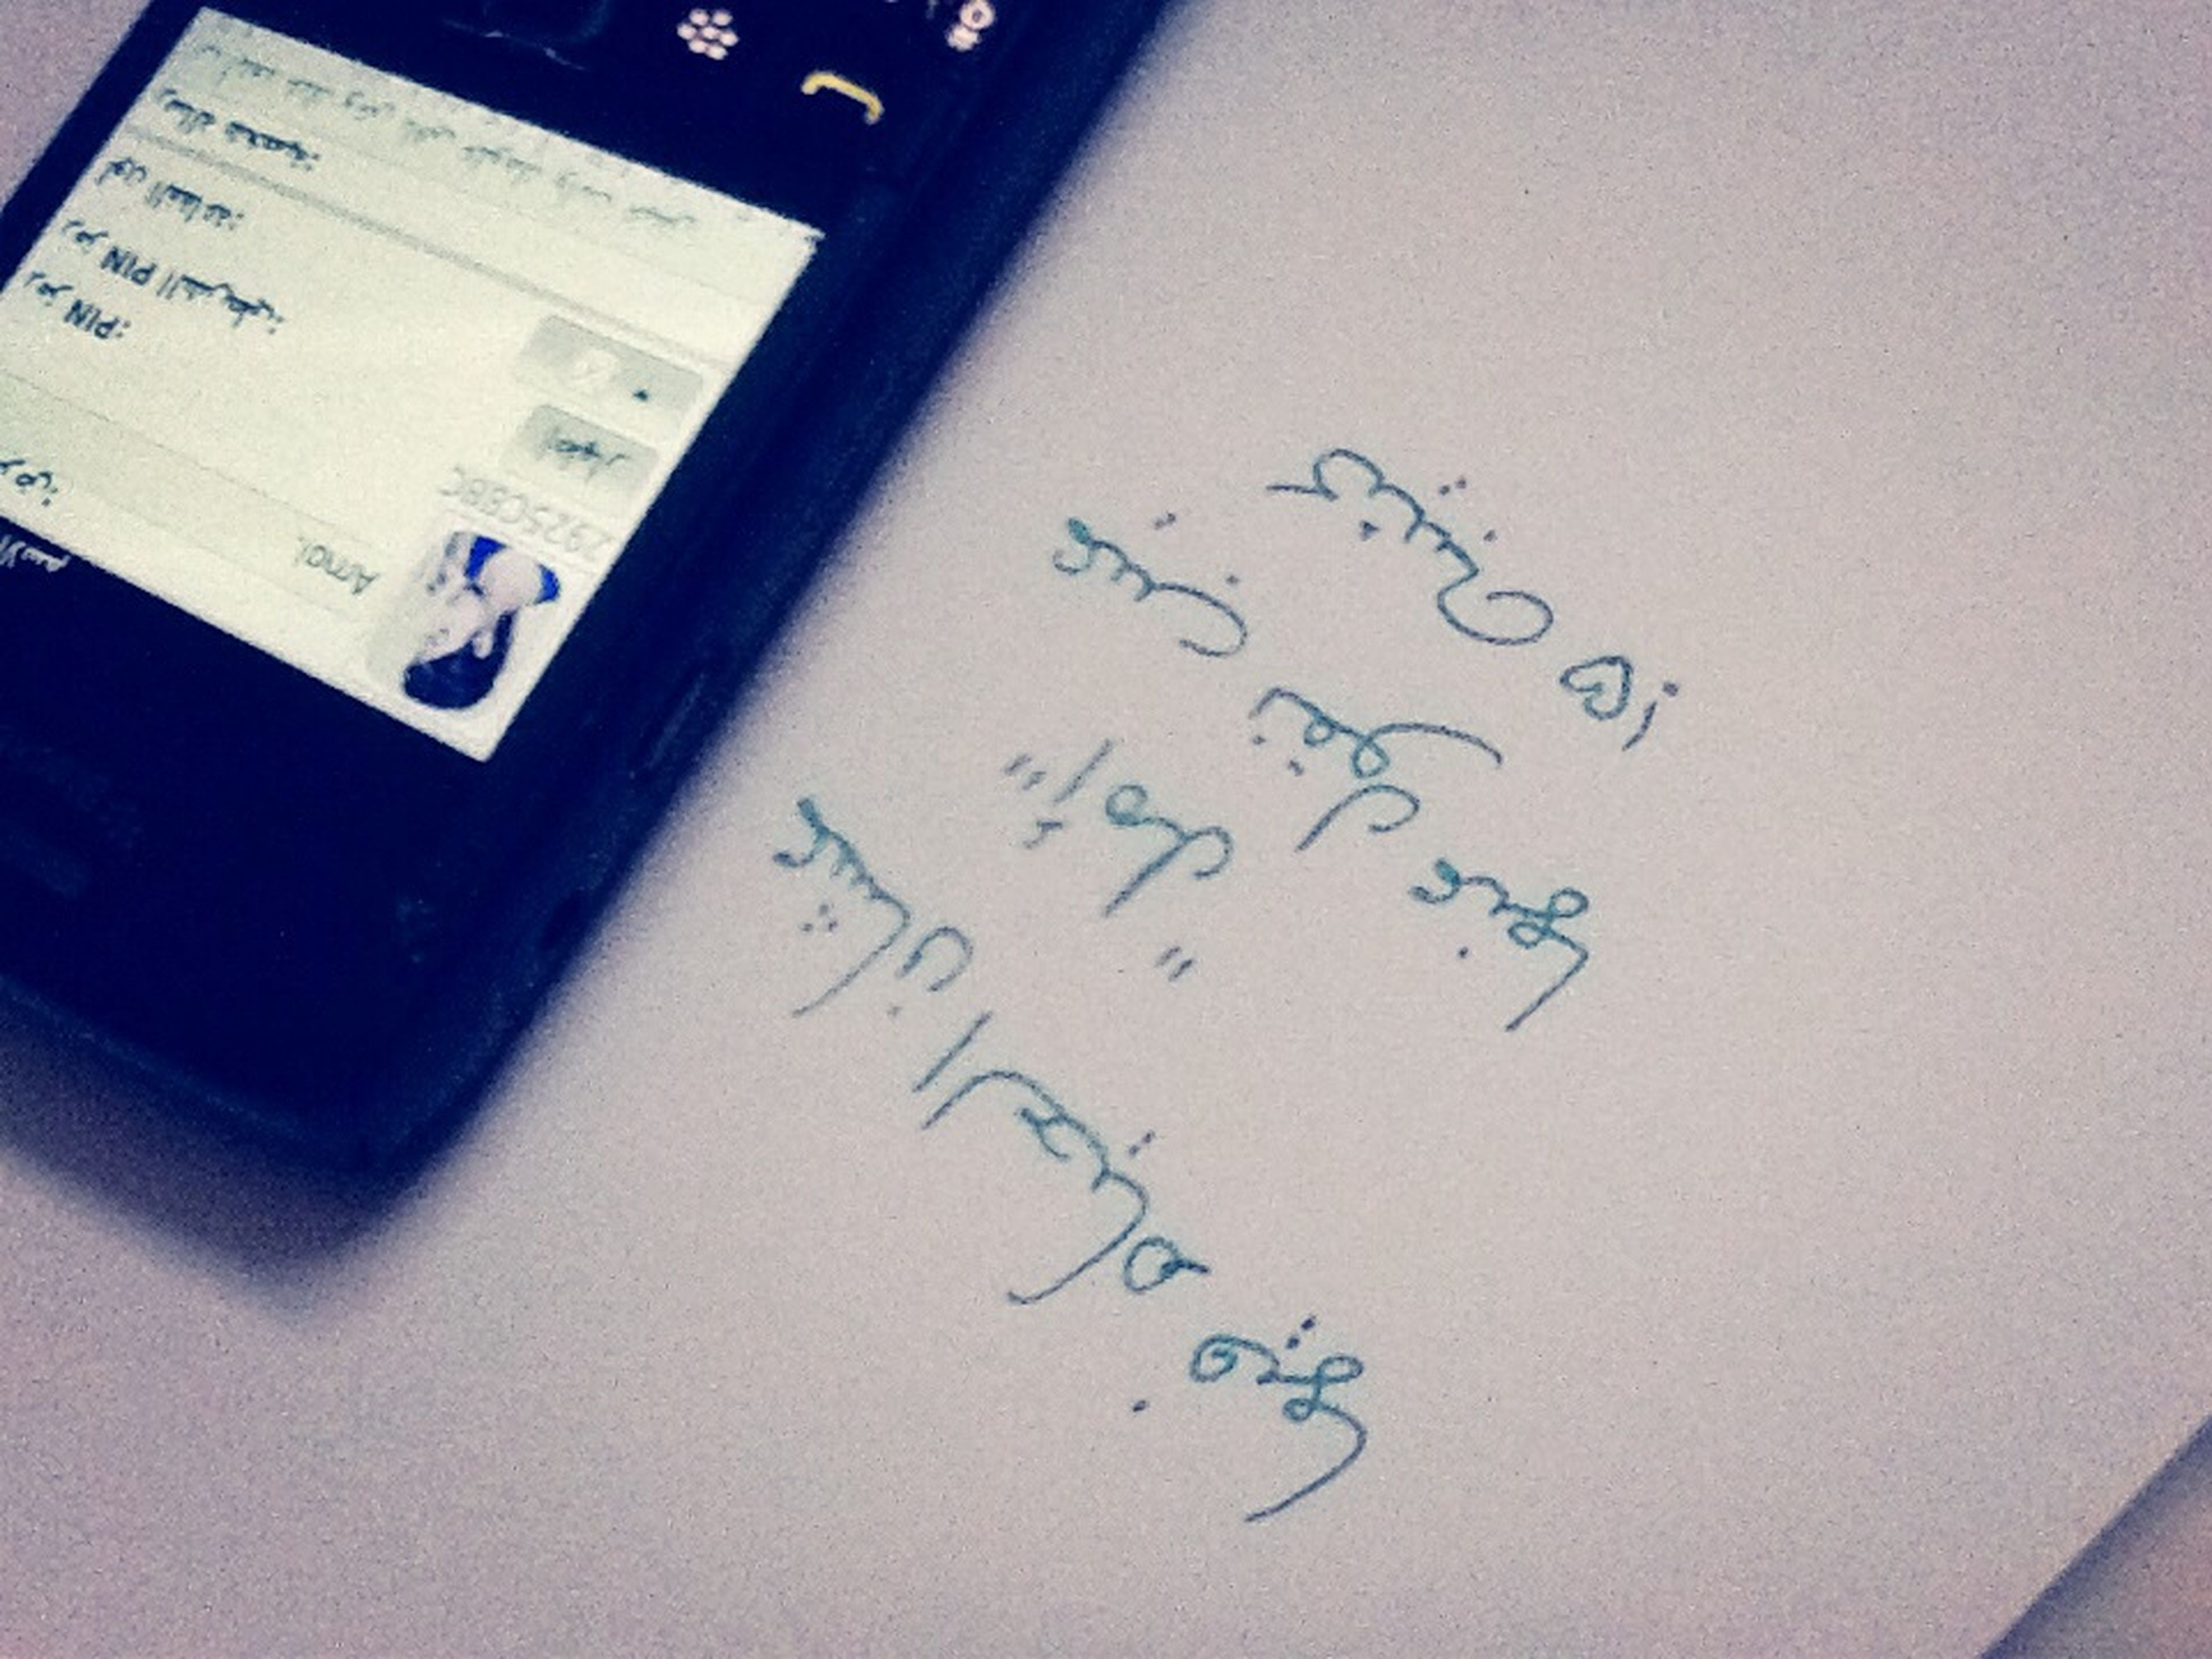 indoors, text, communication, western script, number, close-up, high angle view, technology, table, paper, handwriting, still life, message, no people, connection, non-western script, capital letter, computer keyboard, book, writing